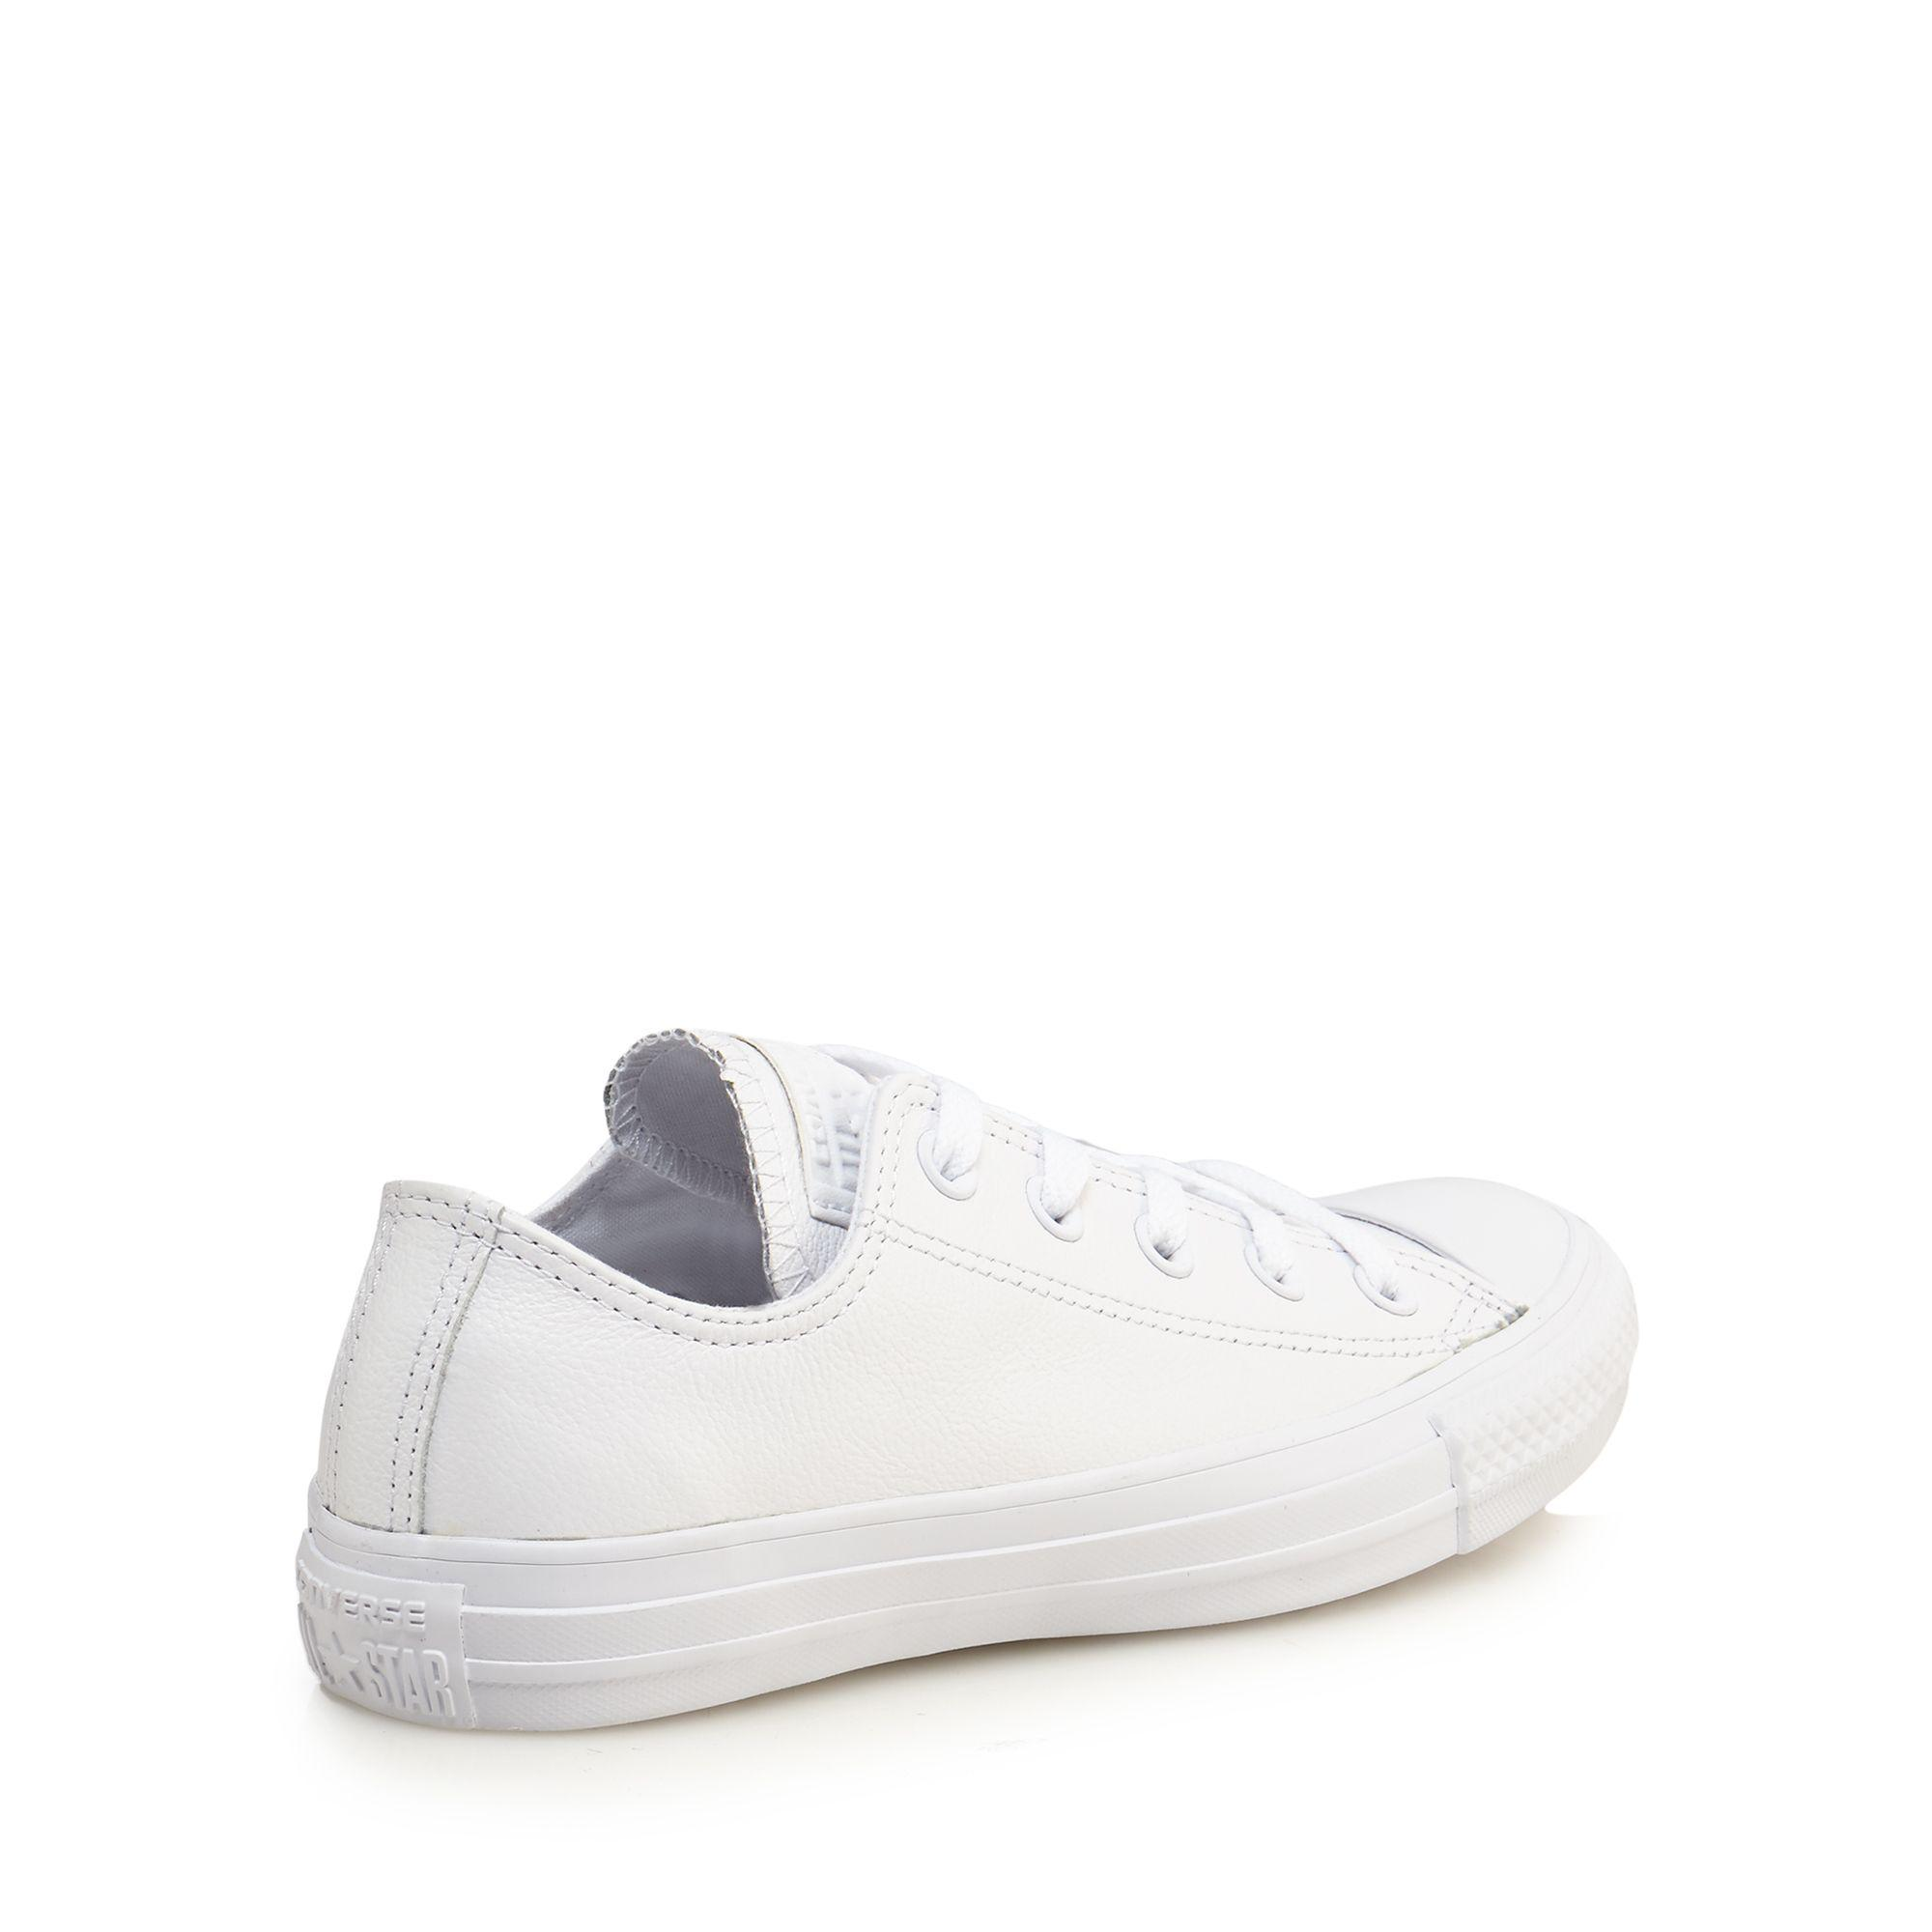 0f25e5054163 Converse White Leather  chuck Taylor All Star  Lace Up Trainers in ...